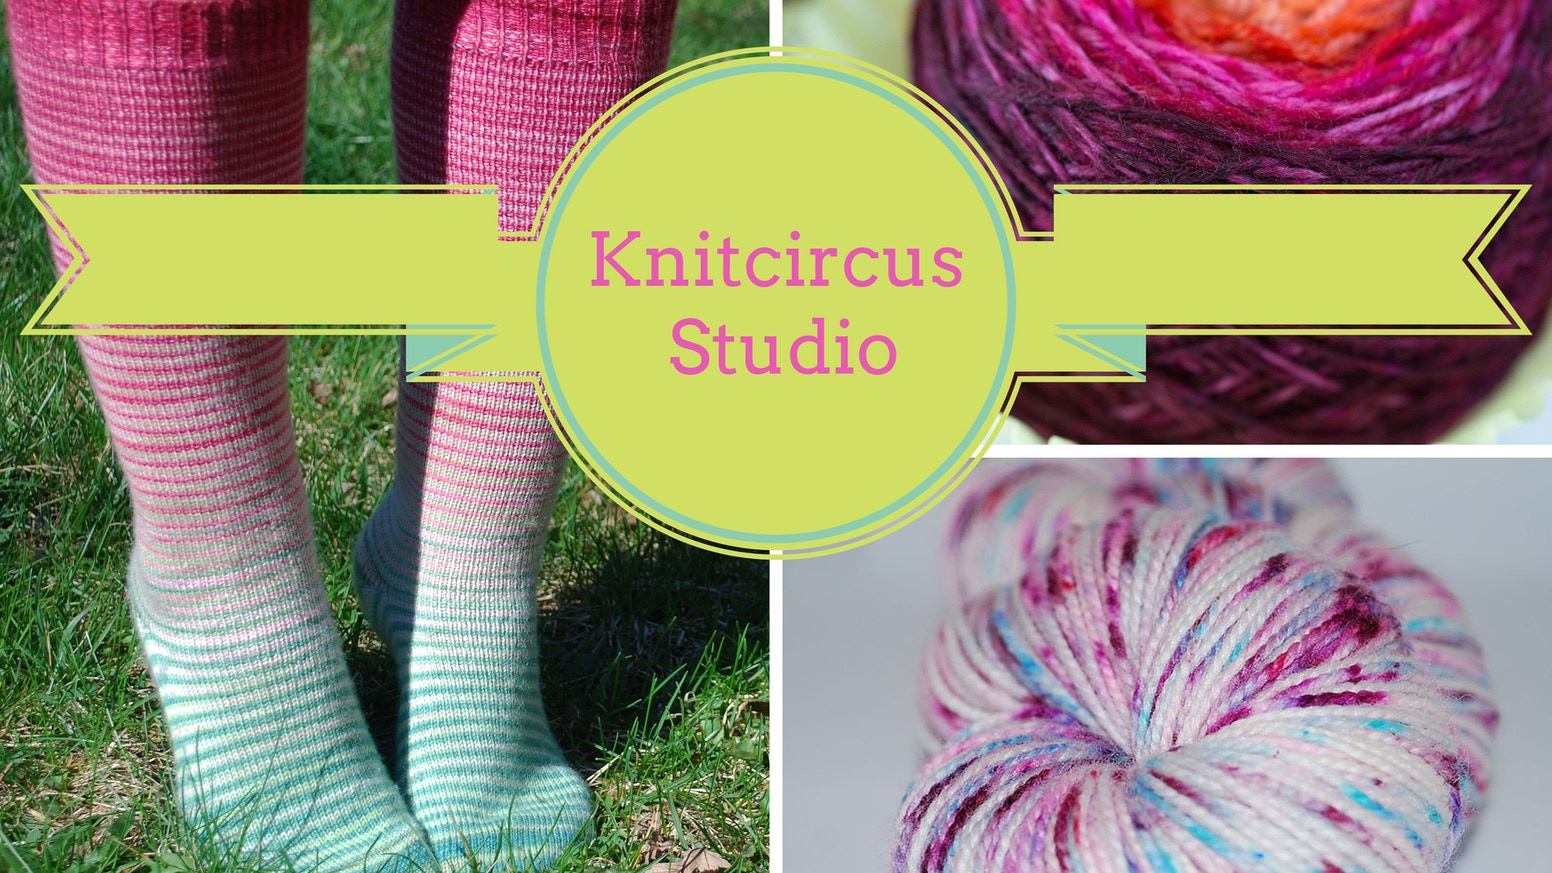 Move Knitcircus Yarns out of the house into a studio to make gradient yarn faster and create a space for knitting classes & community!